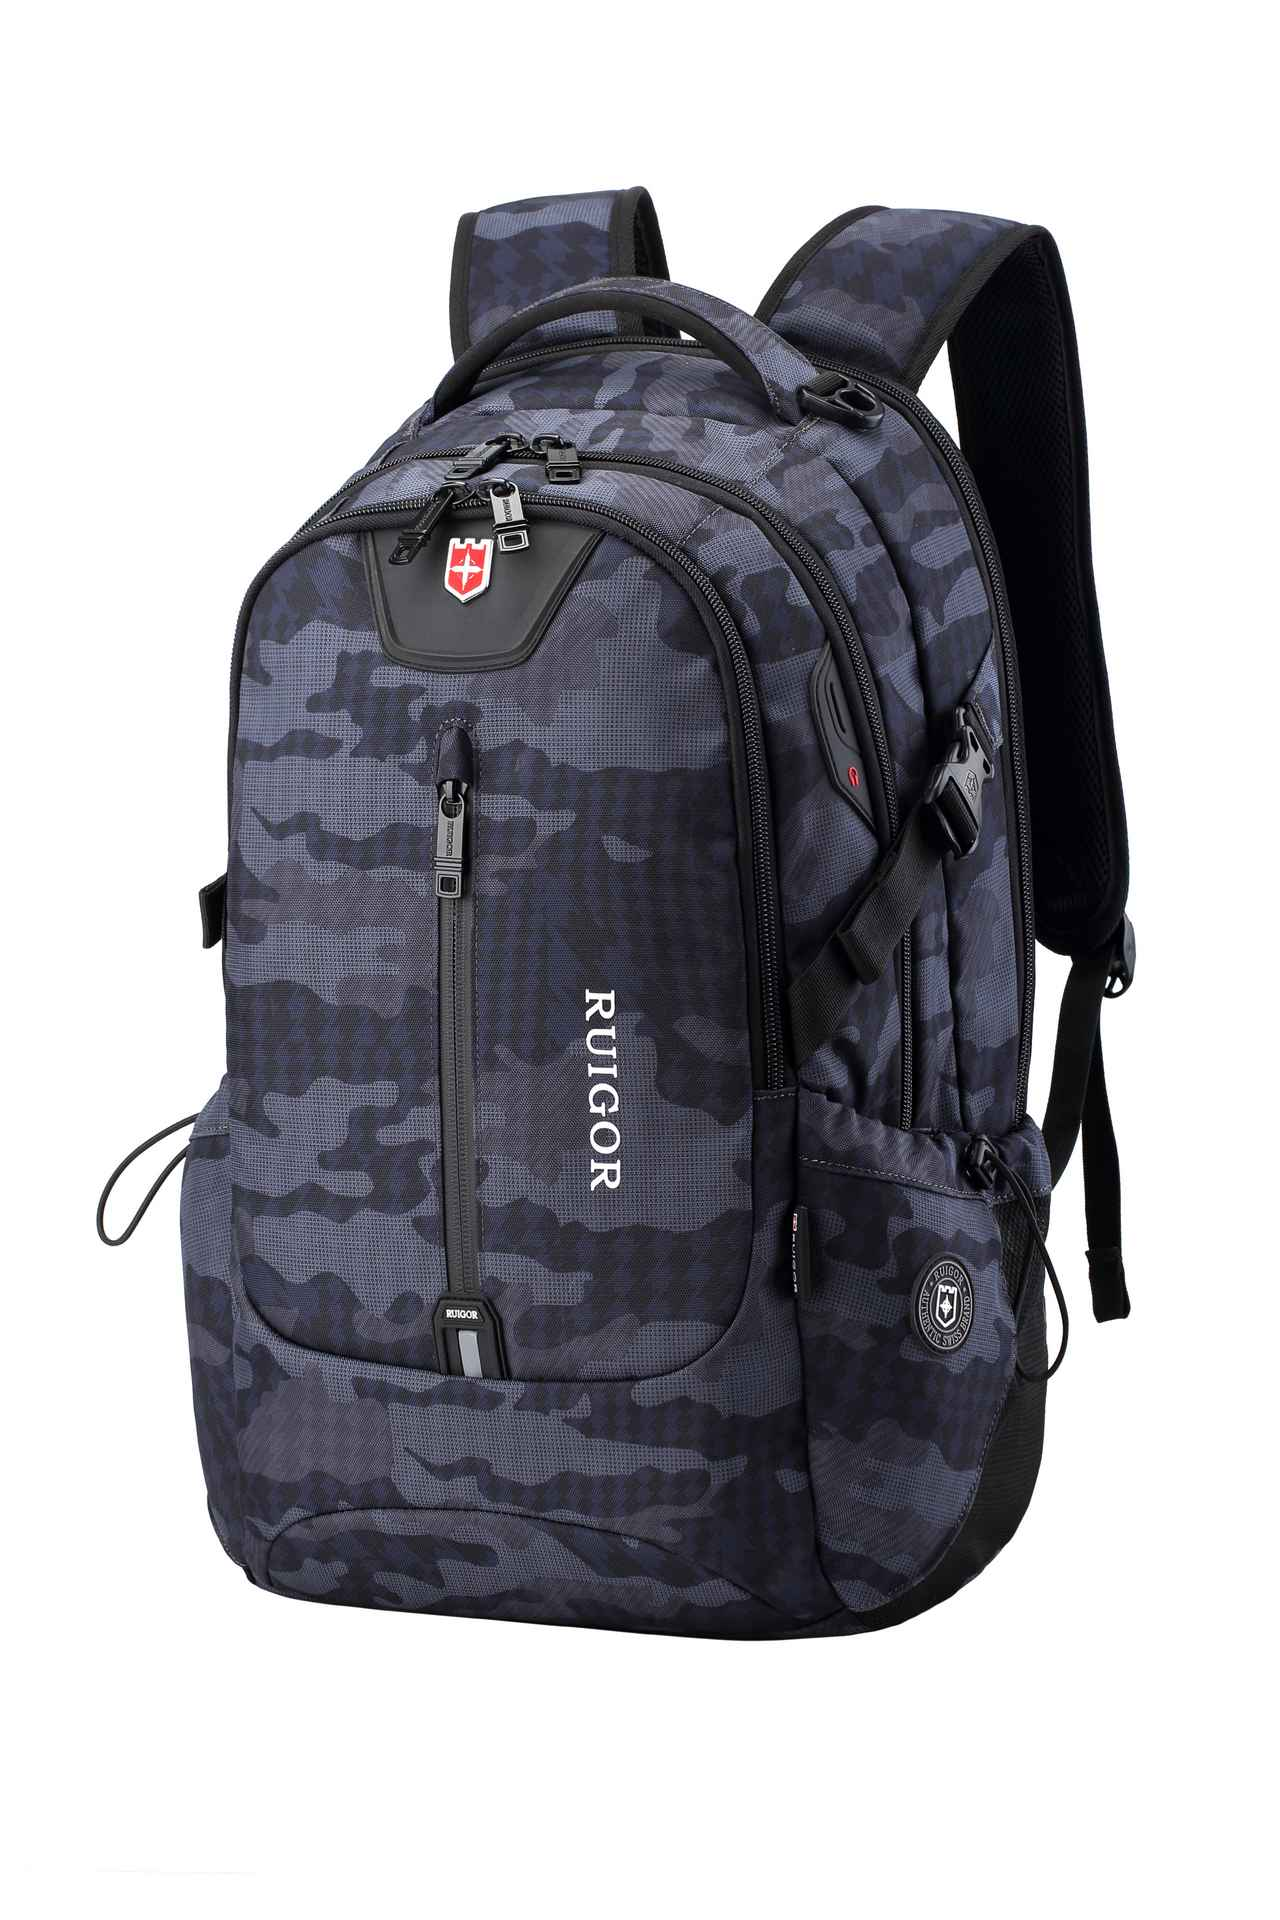 RUIGOR ICON 82 Laptop Backpack Camo Large